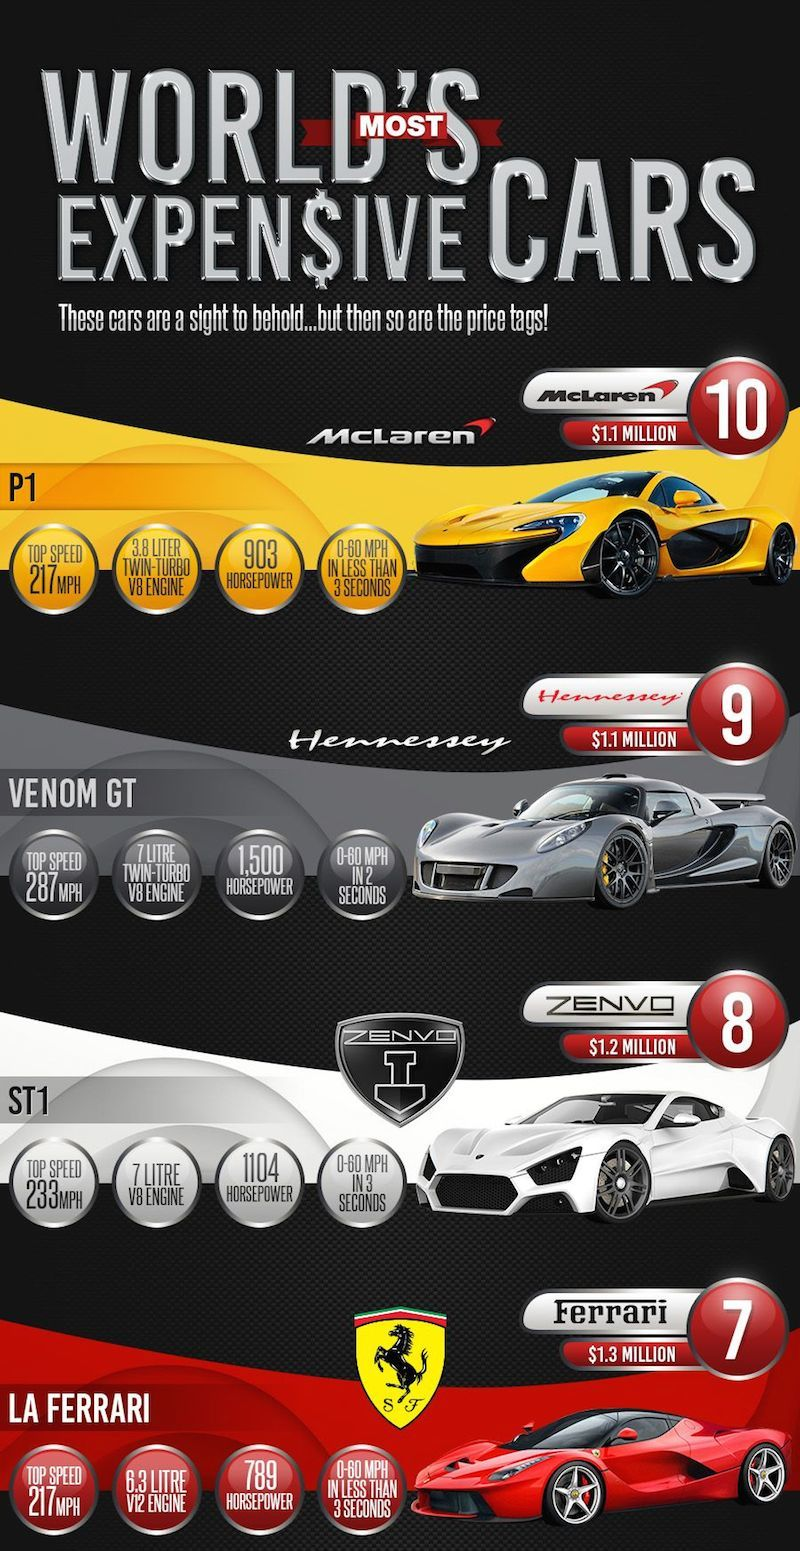 World's most expensive cars - Infographic Part 1